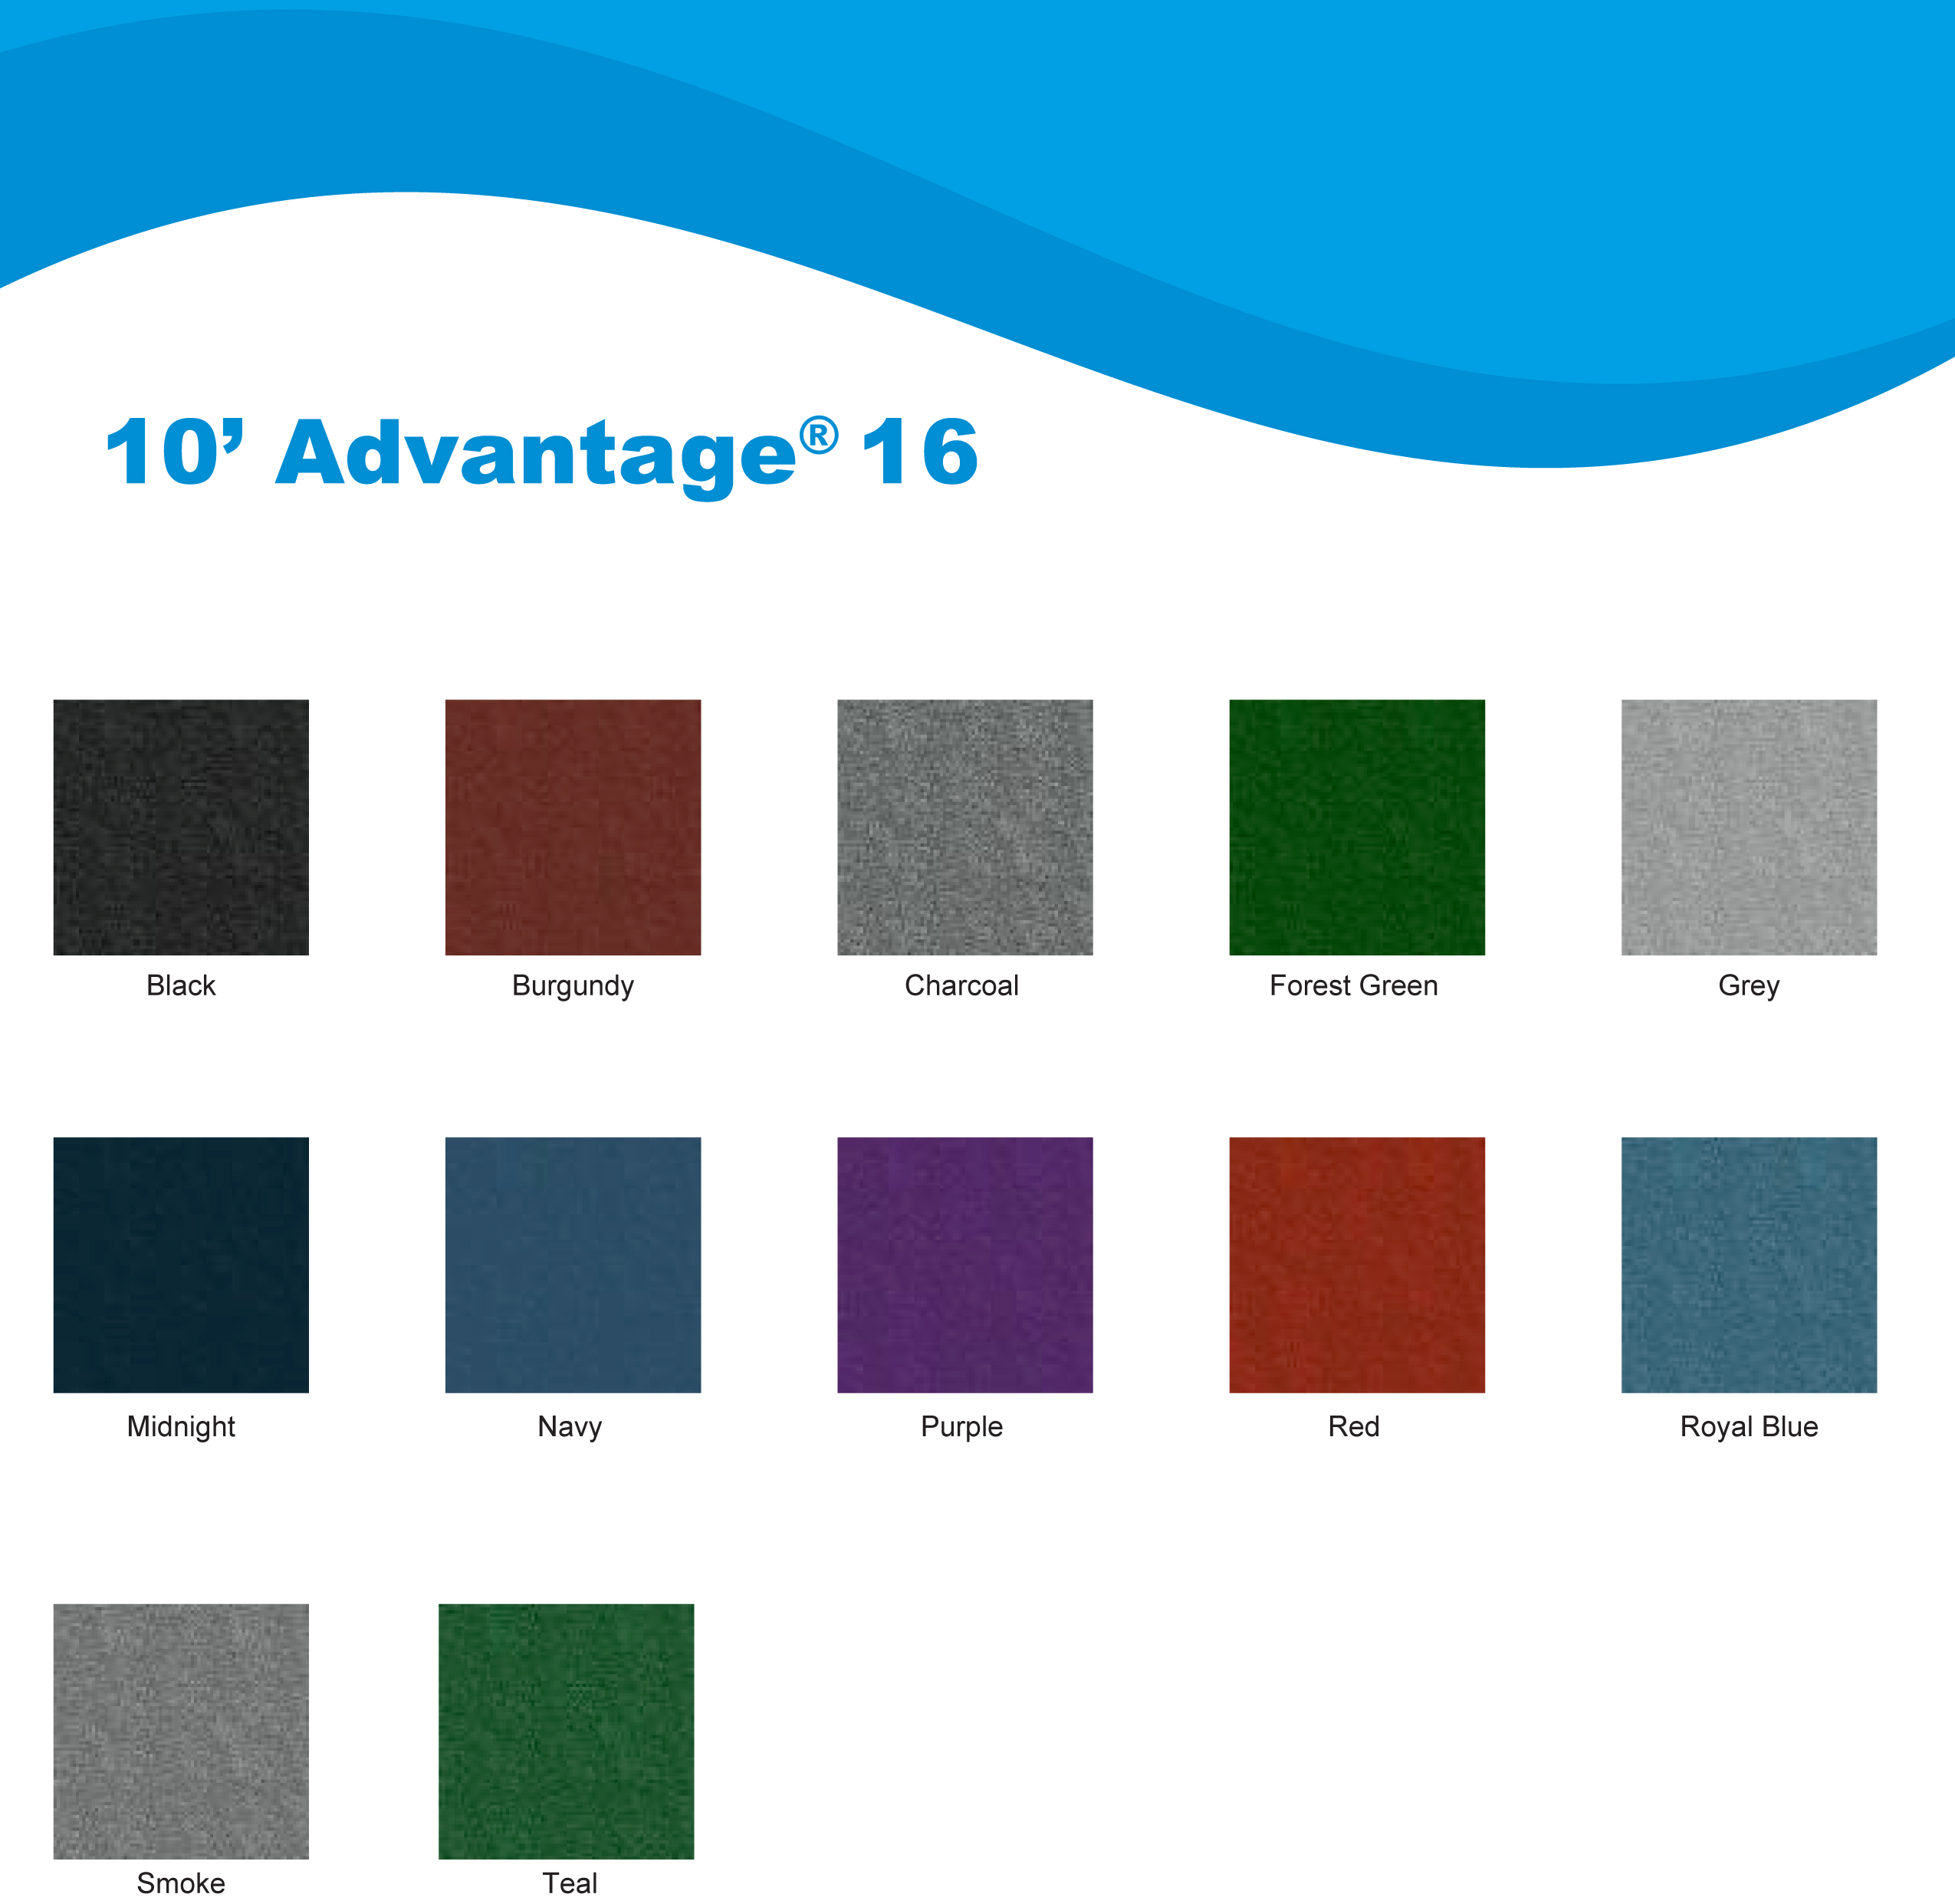 10ft Advantage 16 colors